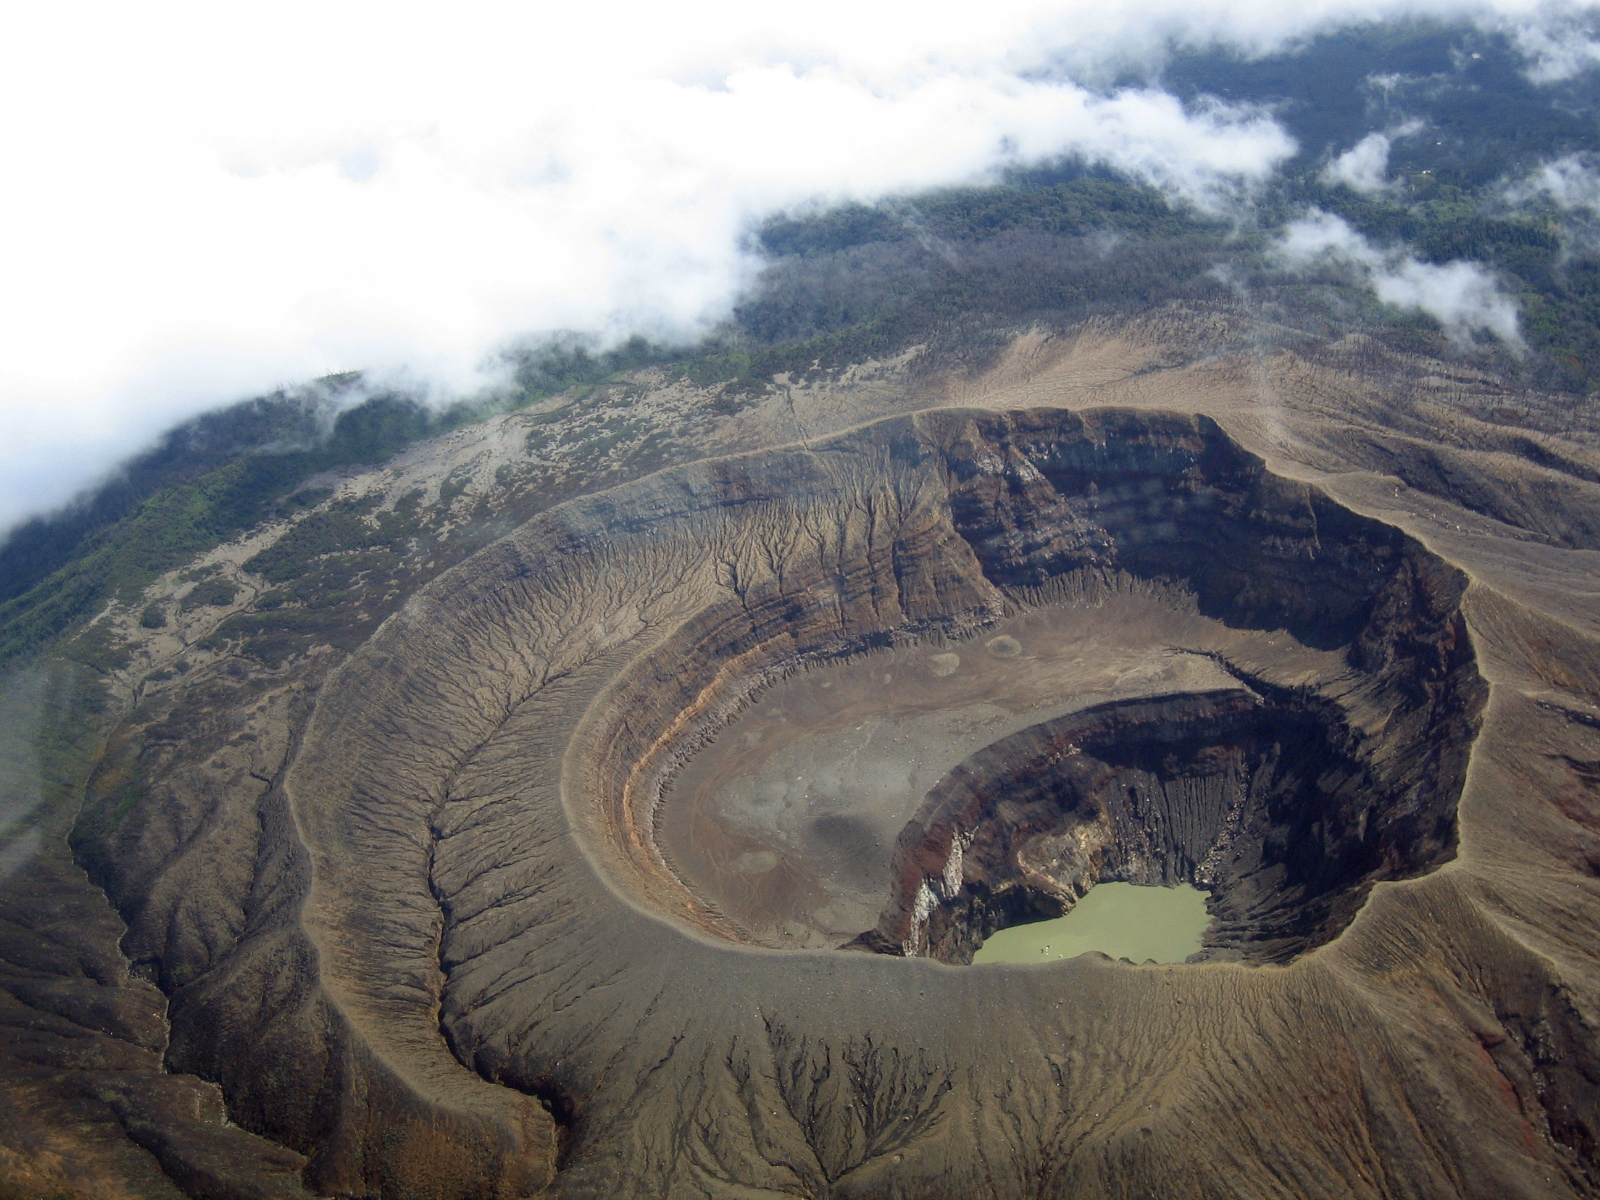 Santa Ana Volcano, El Salvador, a close up aerial view of the nested summit calderas and craters, along with the crater lake as seen from a United States ...